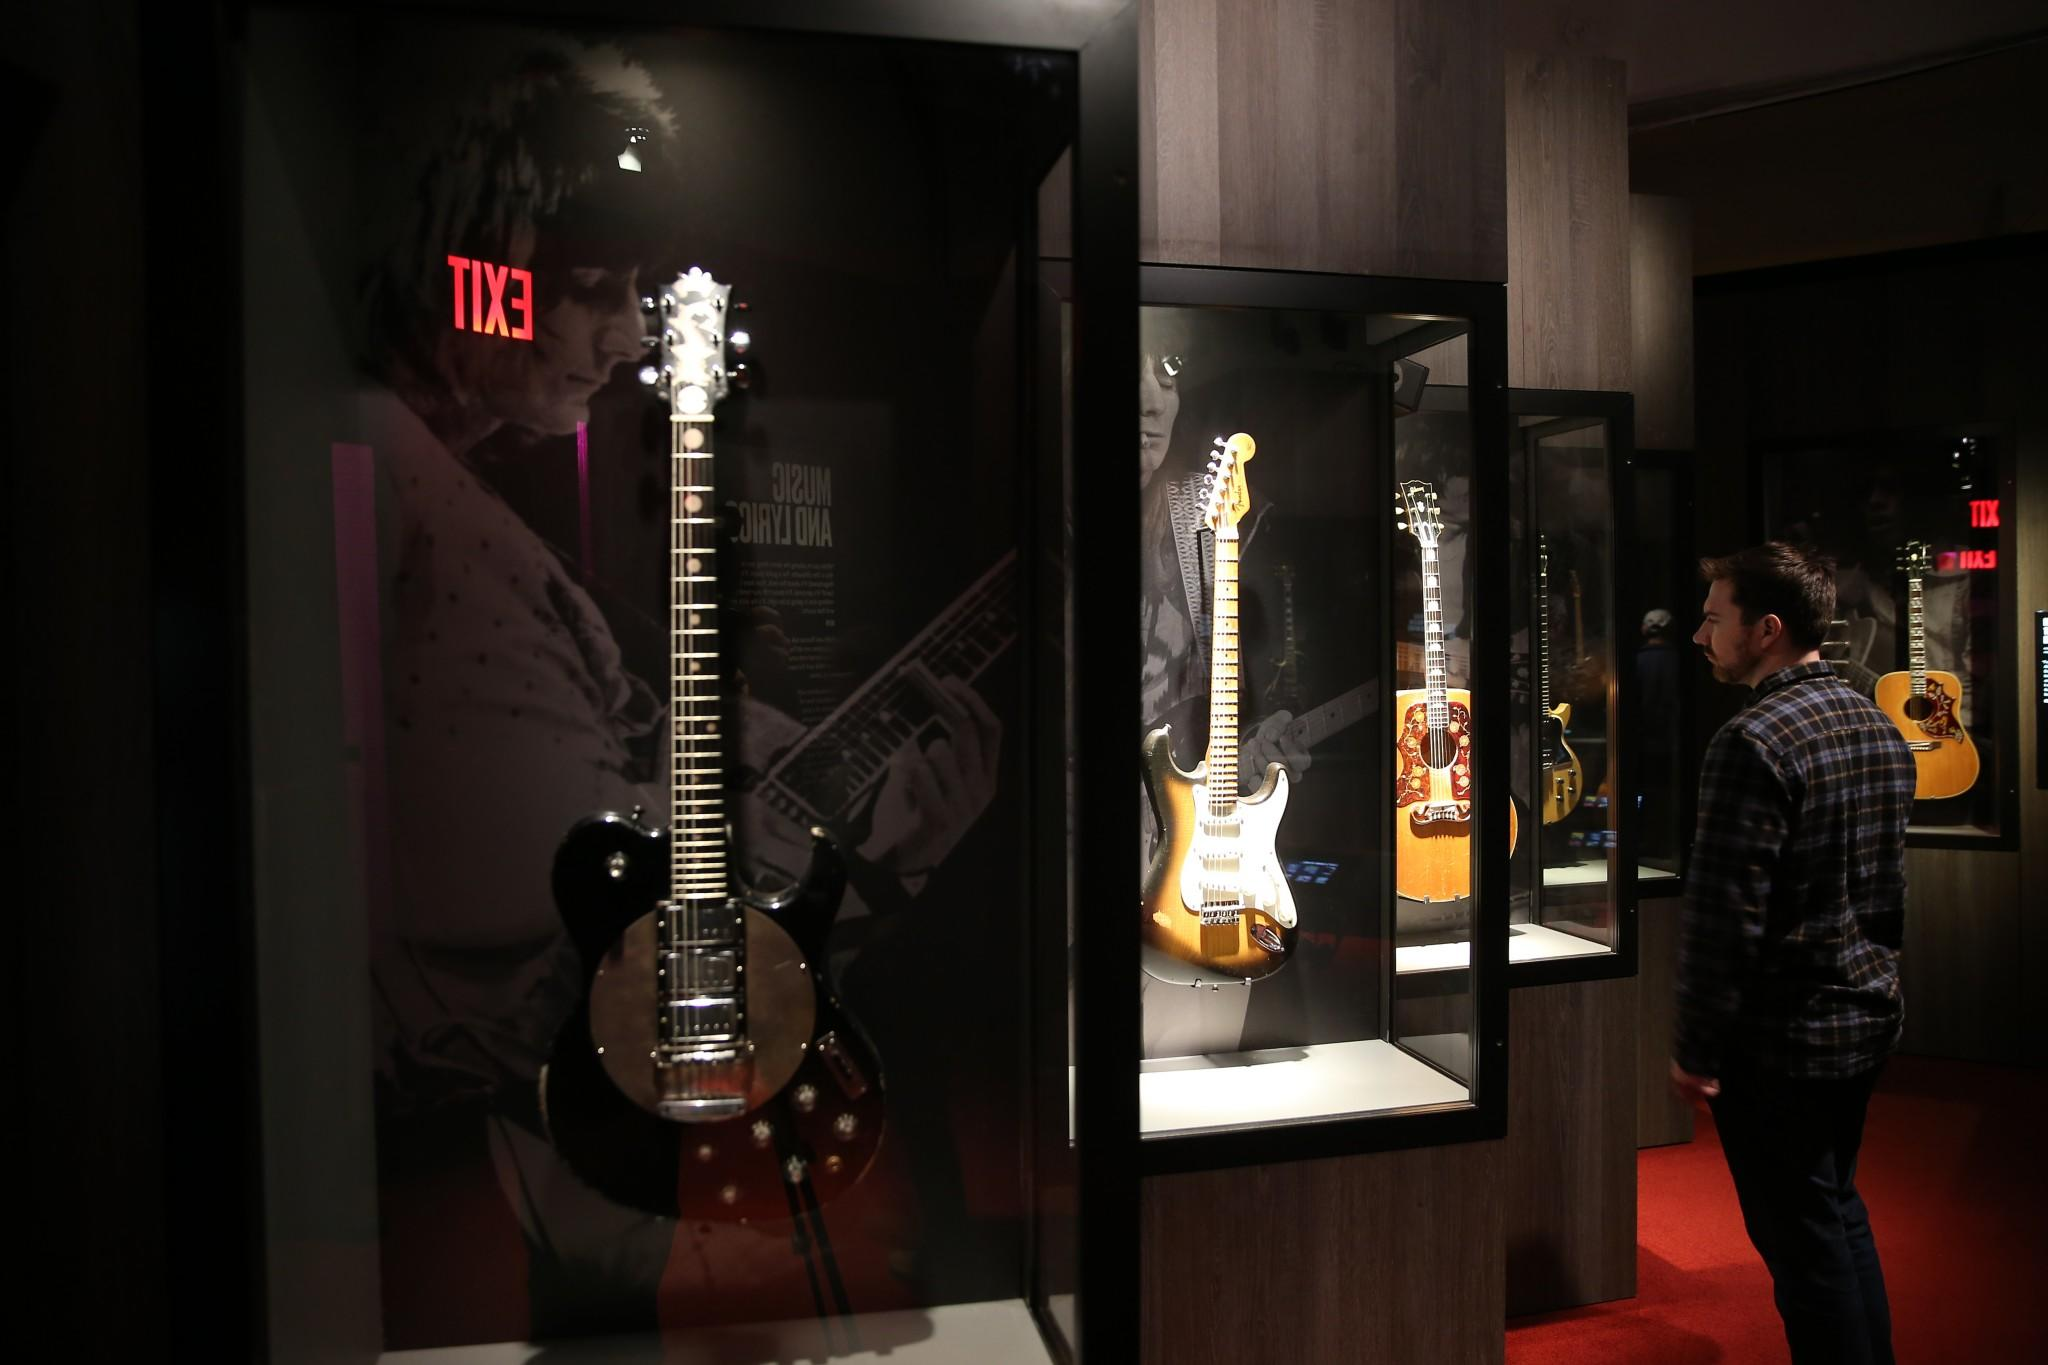 The guitar gallery brings together examples of some of Keith, Ronnie and Mick's prized instruments. (Gordon Donovan/Yahoo News)